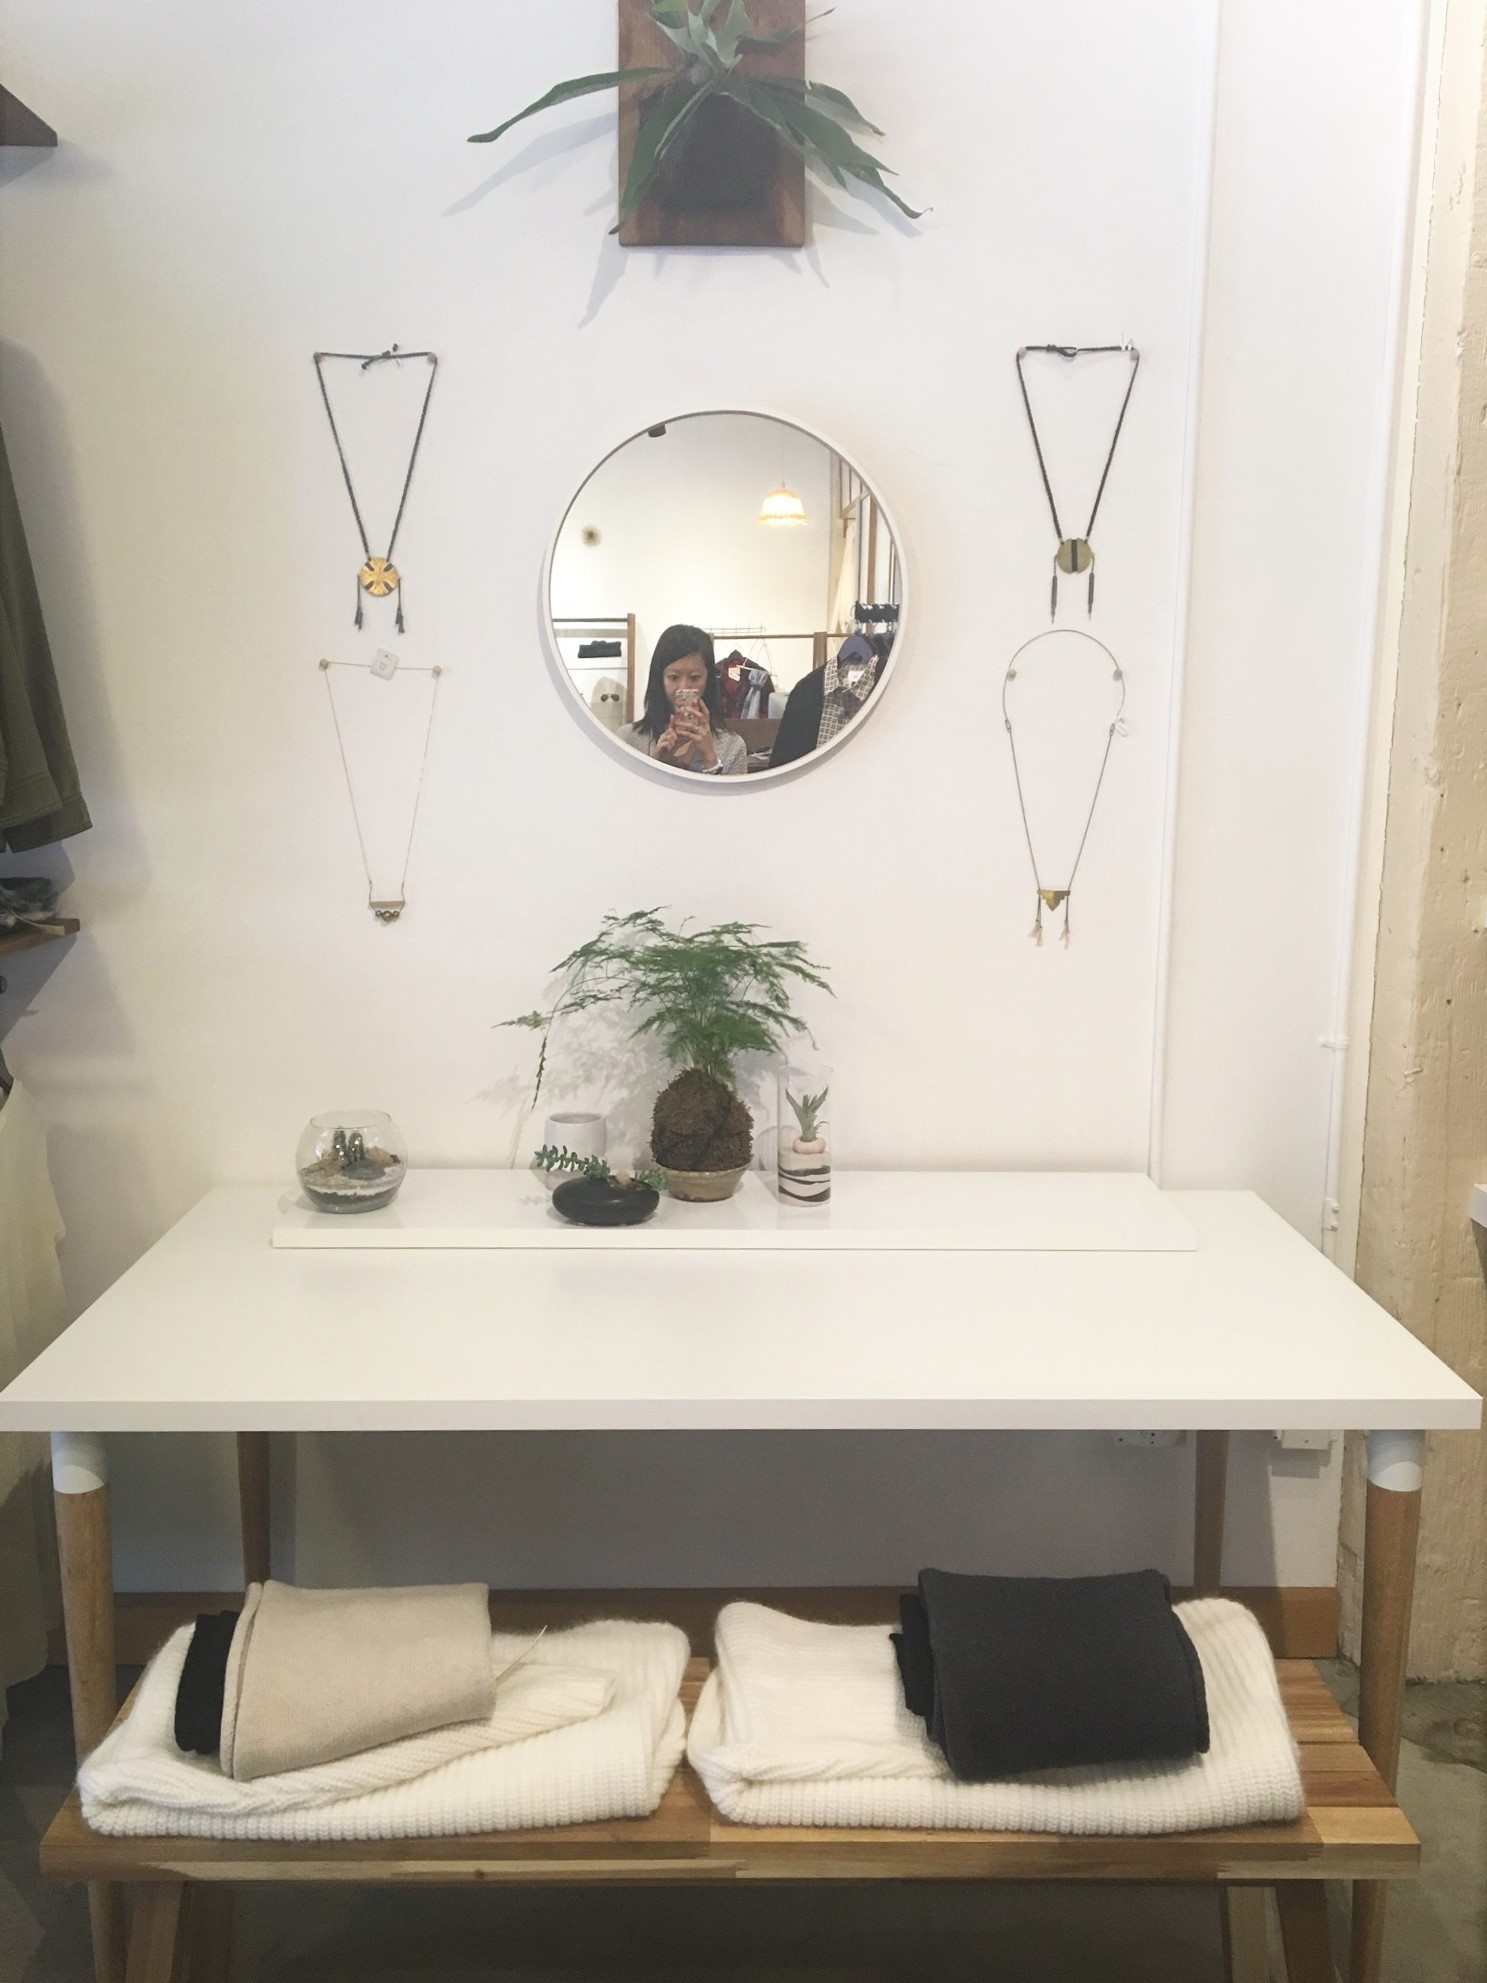 I stopped into  Vintalier  because I loved the store's aesthetic - clean lines and simple decor. The store has a mix of vintage and modern clothing so the price points range from low to high.